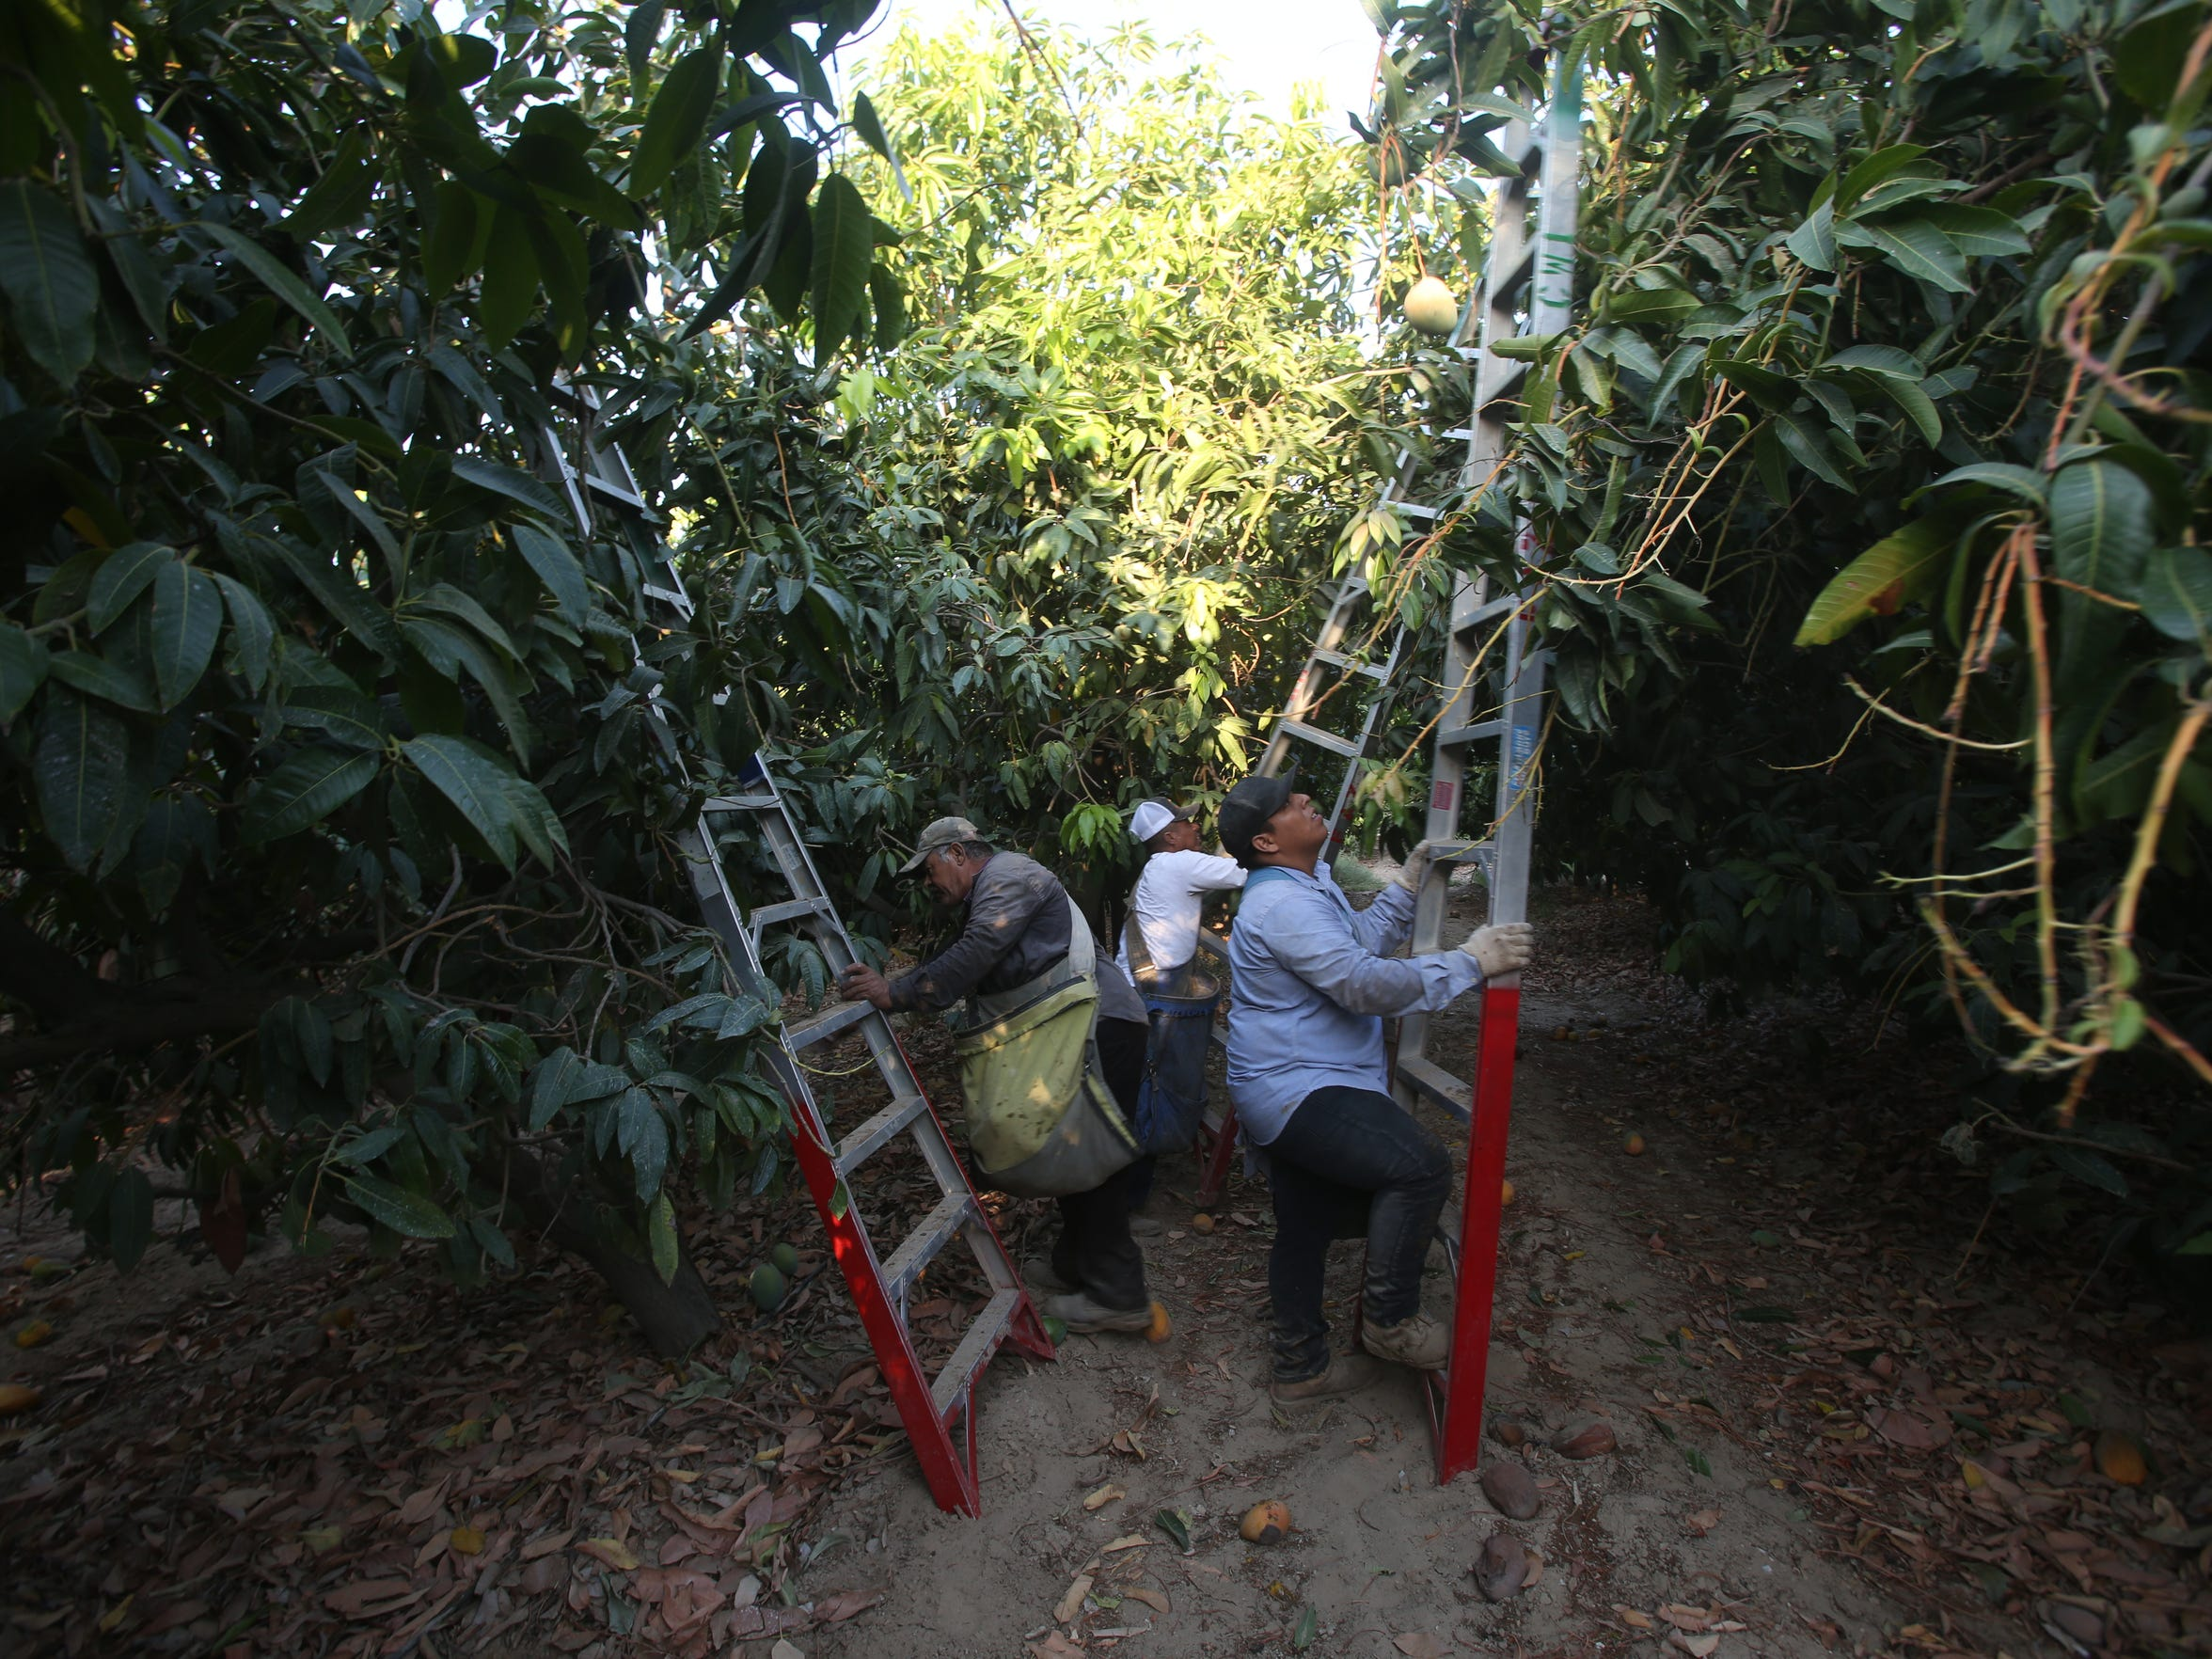 Farmworkers use ladders to pick mangos in Imperial